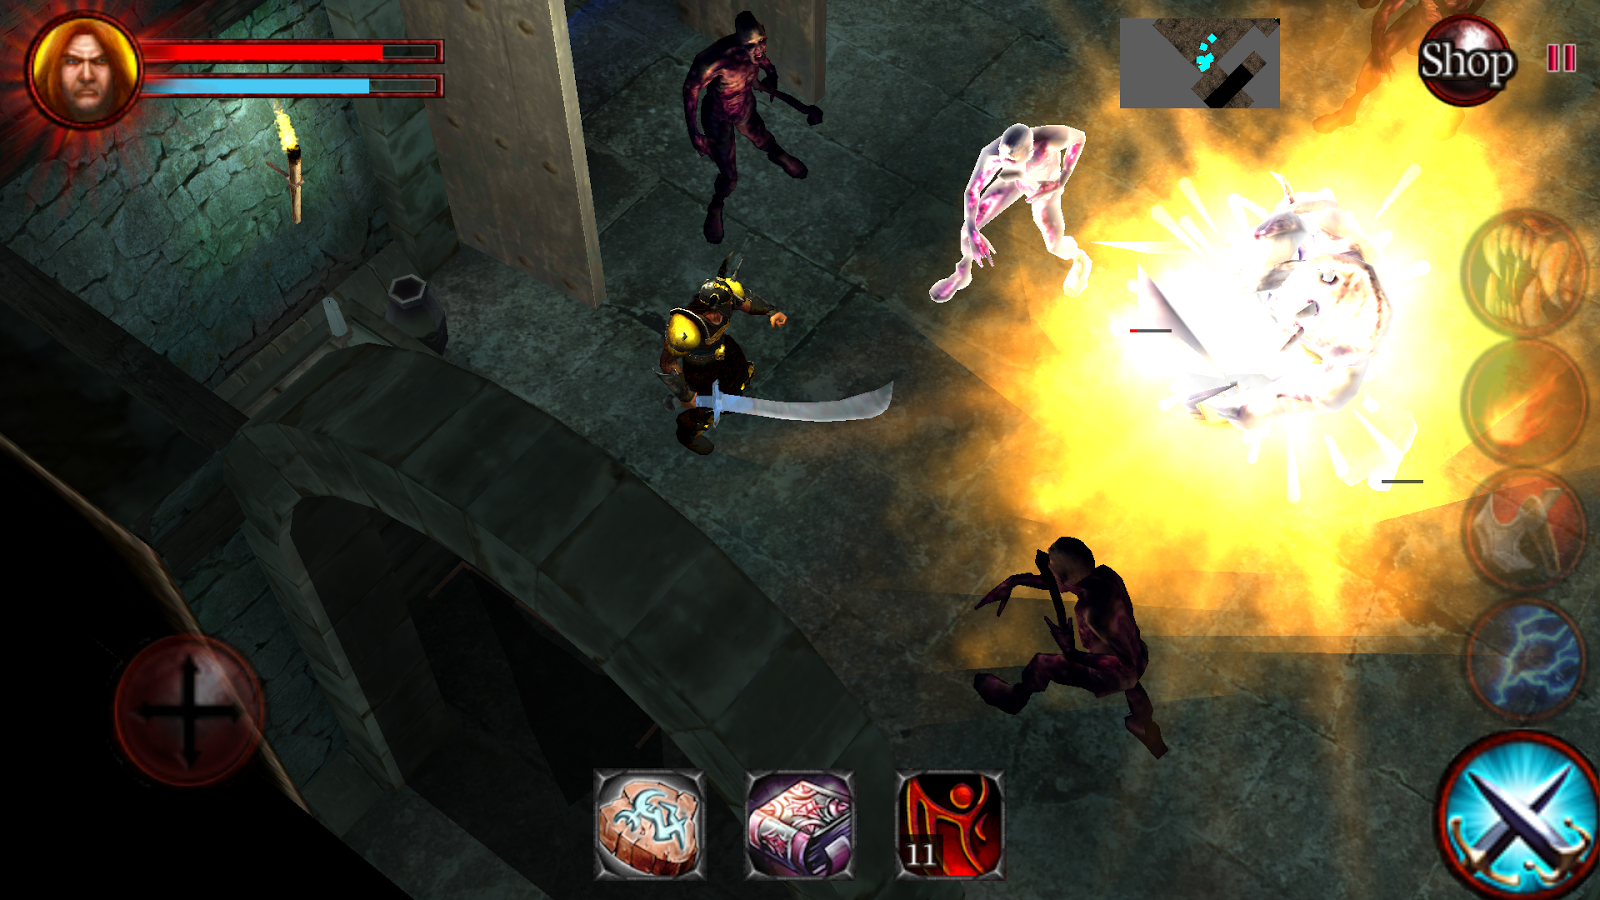 ... Dungeons and Demons - Fantasy Action RPG 1.9.6 screenshot 4 ...